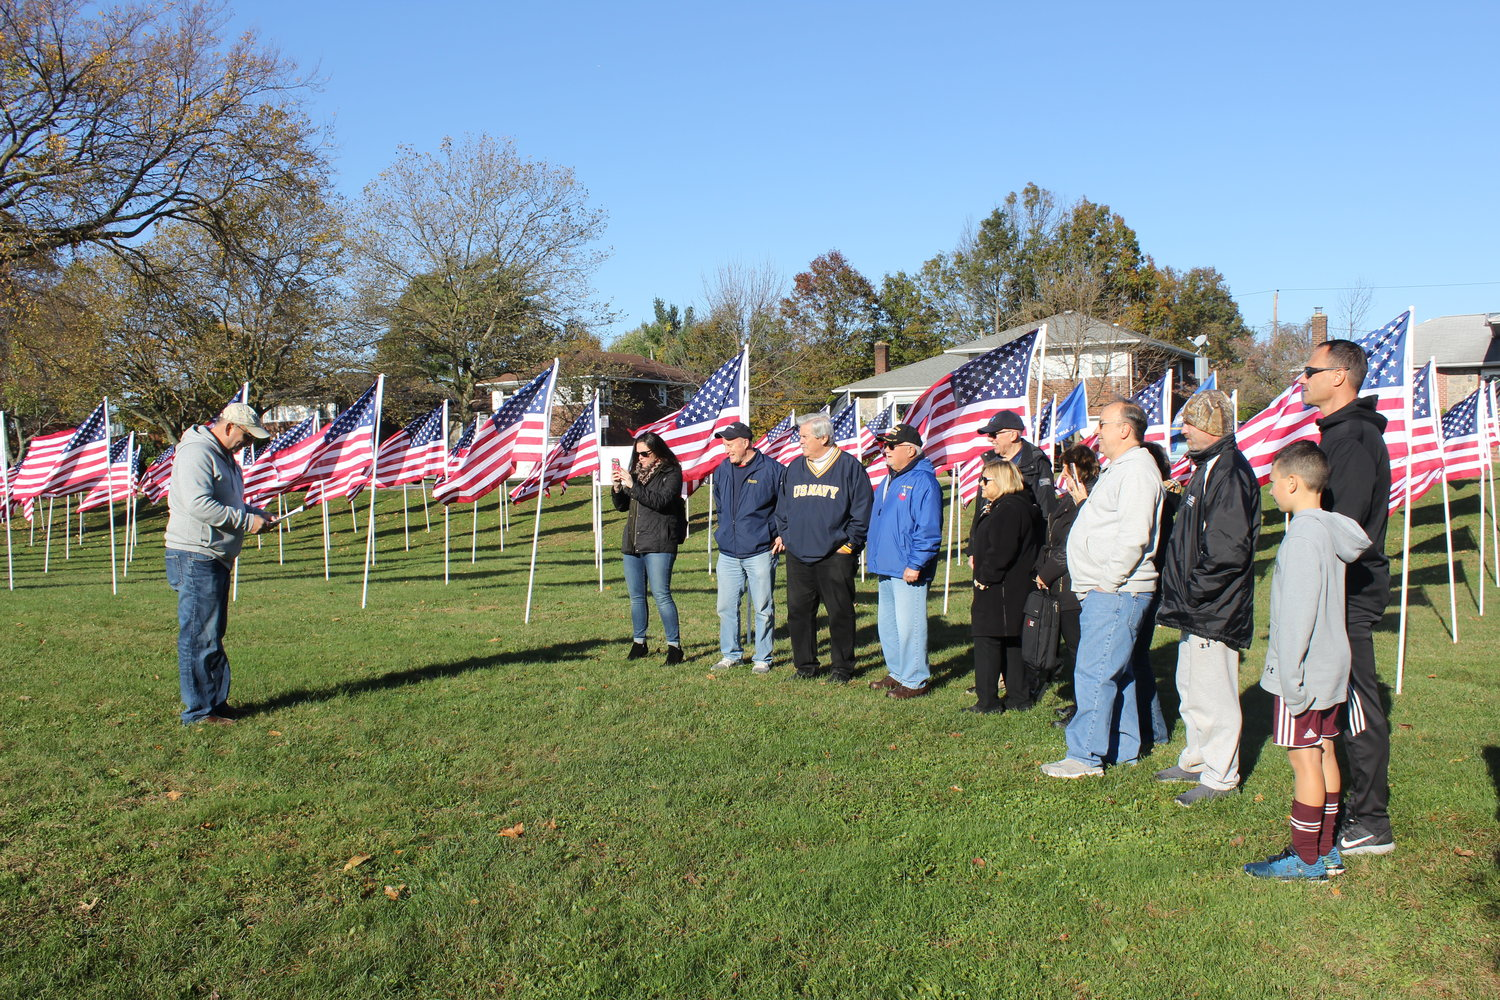 Each flag is dedicated to a member of the East Meadow community who served in the U.S. military. Kiwanis President Alan Beinhacker addressed the crowd at W.T. Clarke High School.